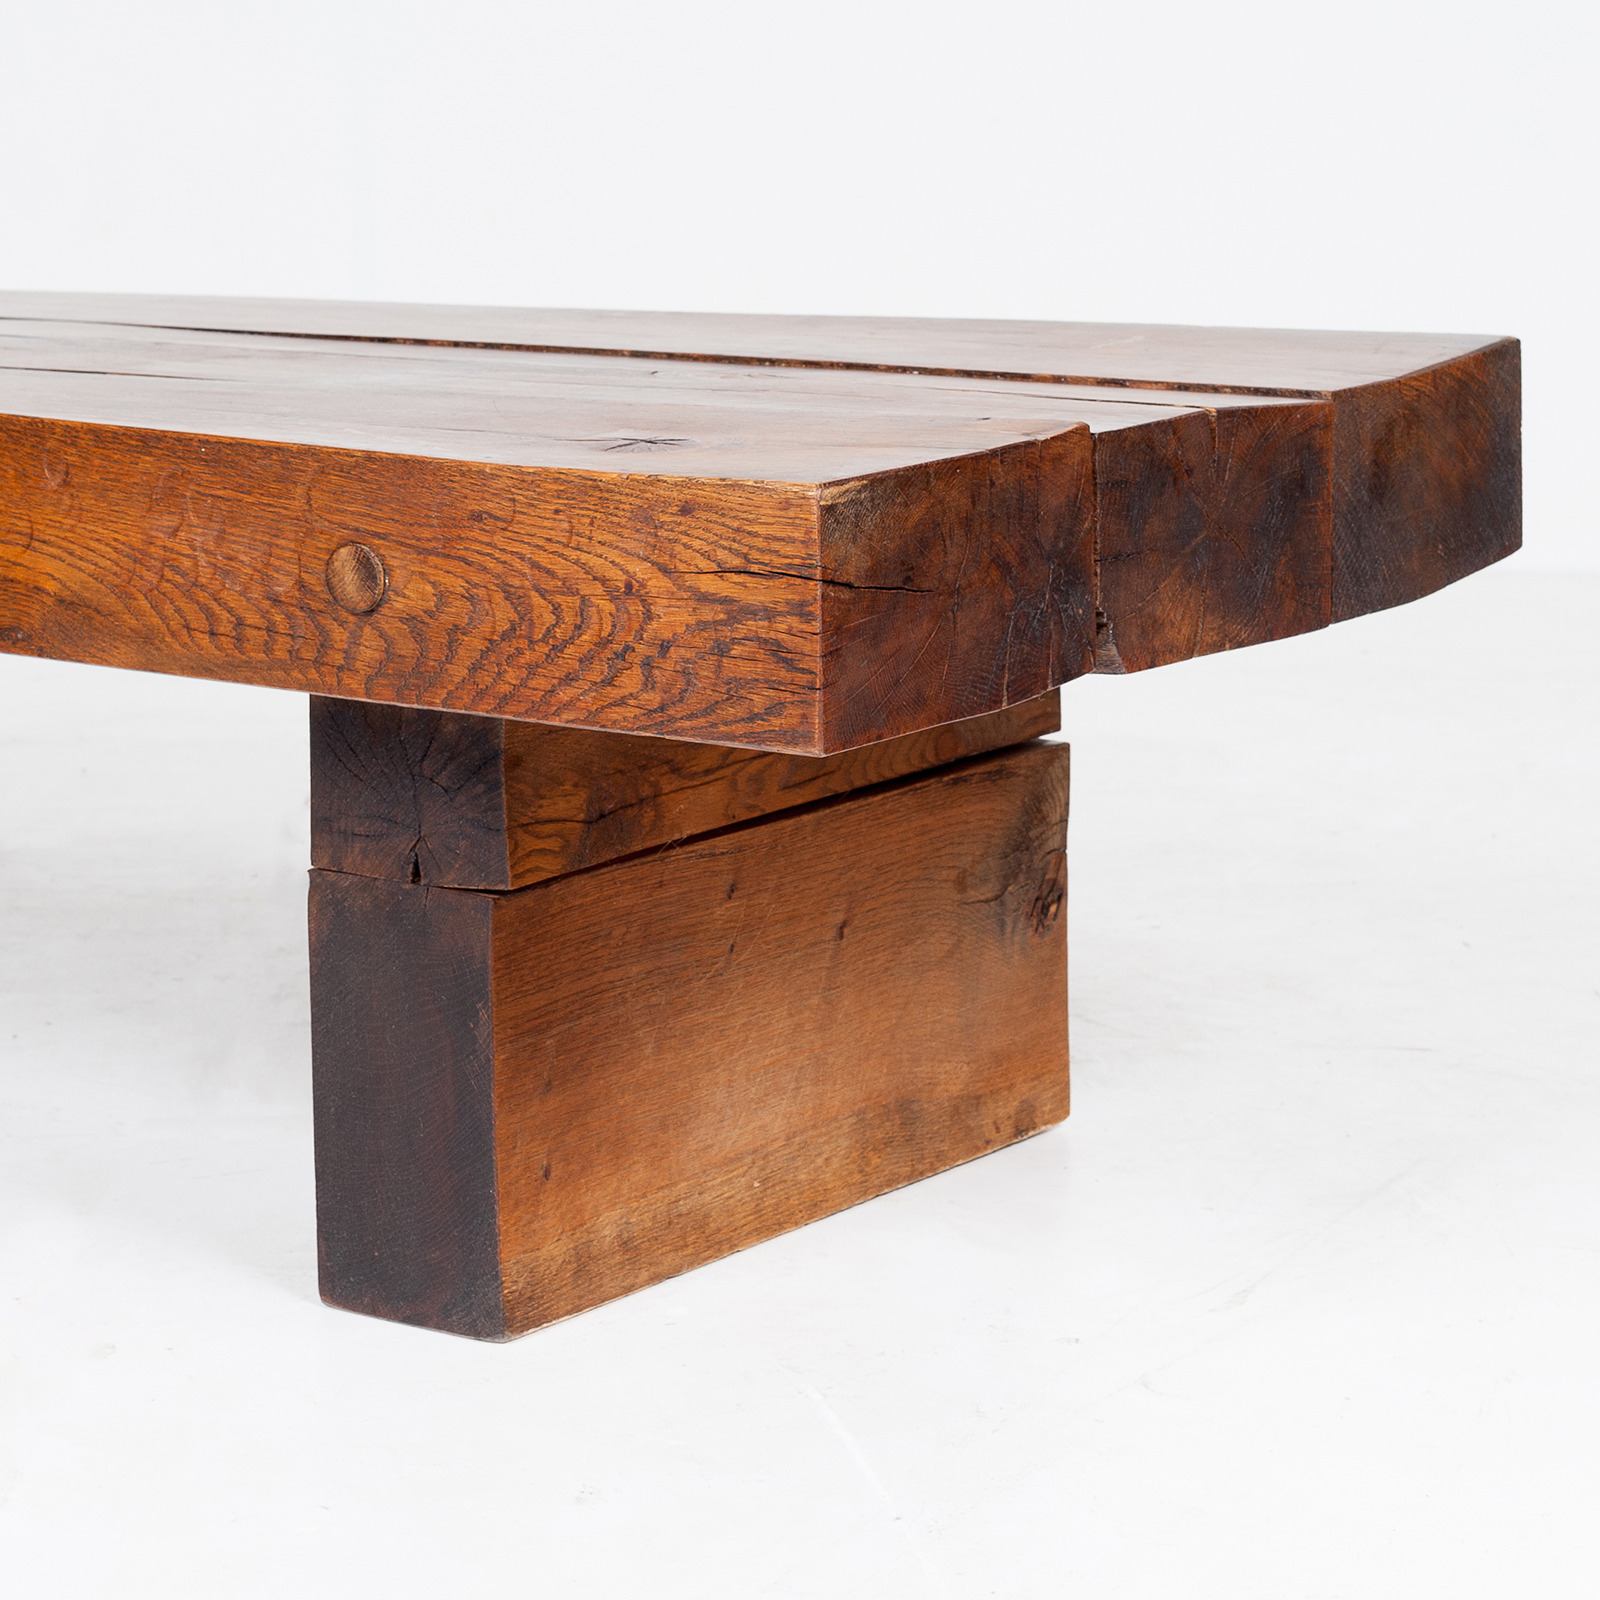 Brutalist Style Coffee Table In Timber, 1960s, The Netherlands 800